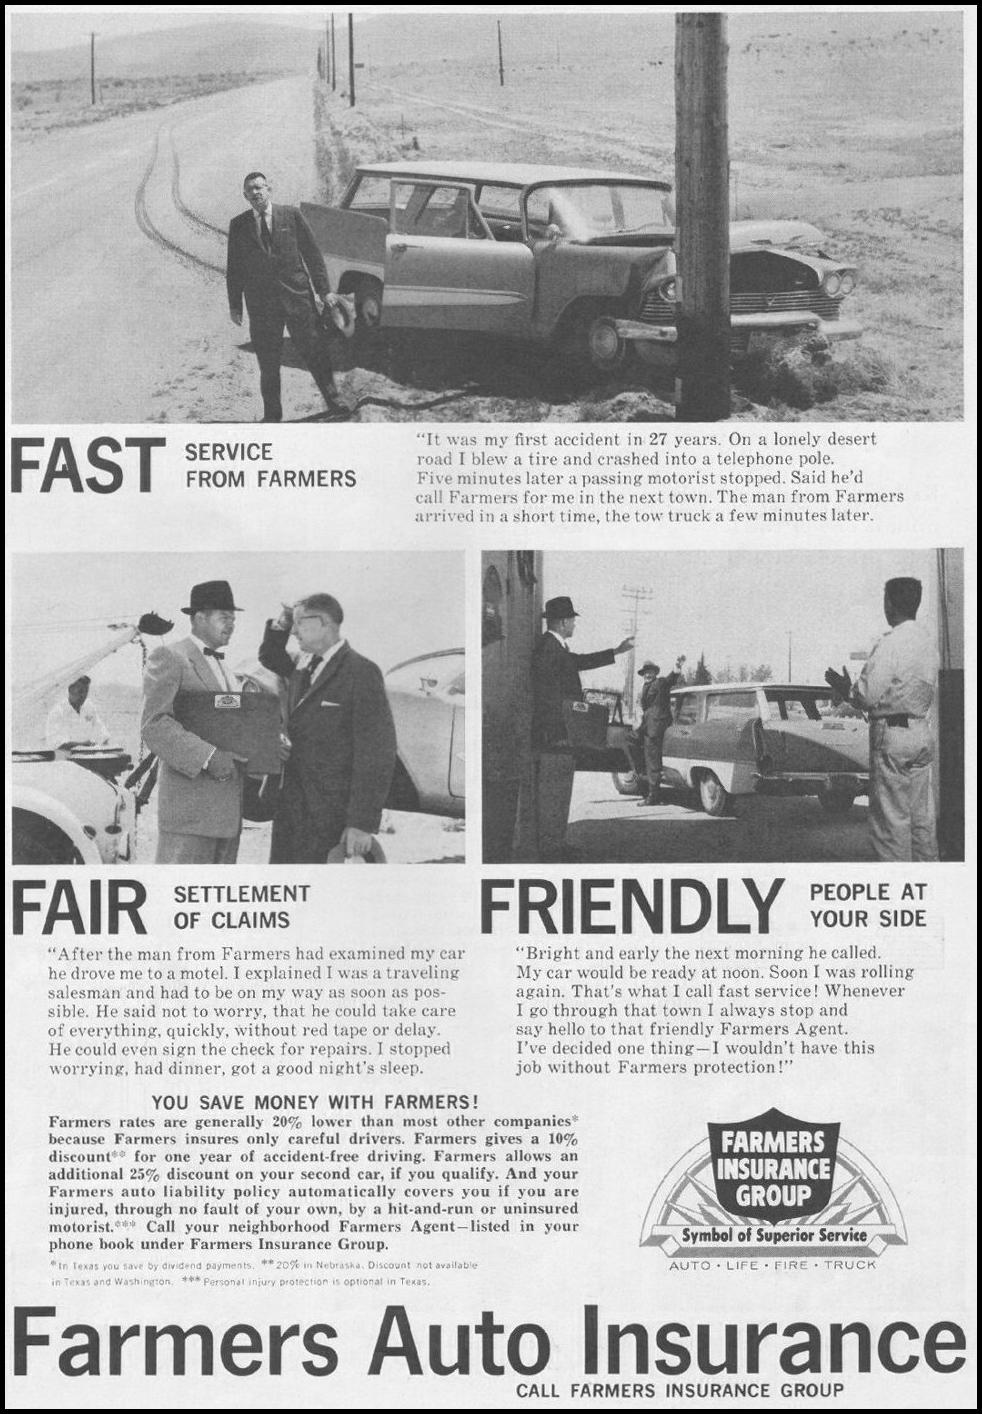 FARMERS AUTO INSURANCE SATURDAY EVENING POST 06/11/1960 p. 103